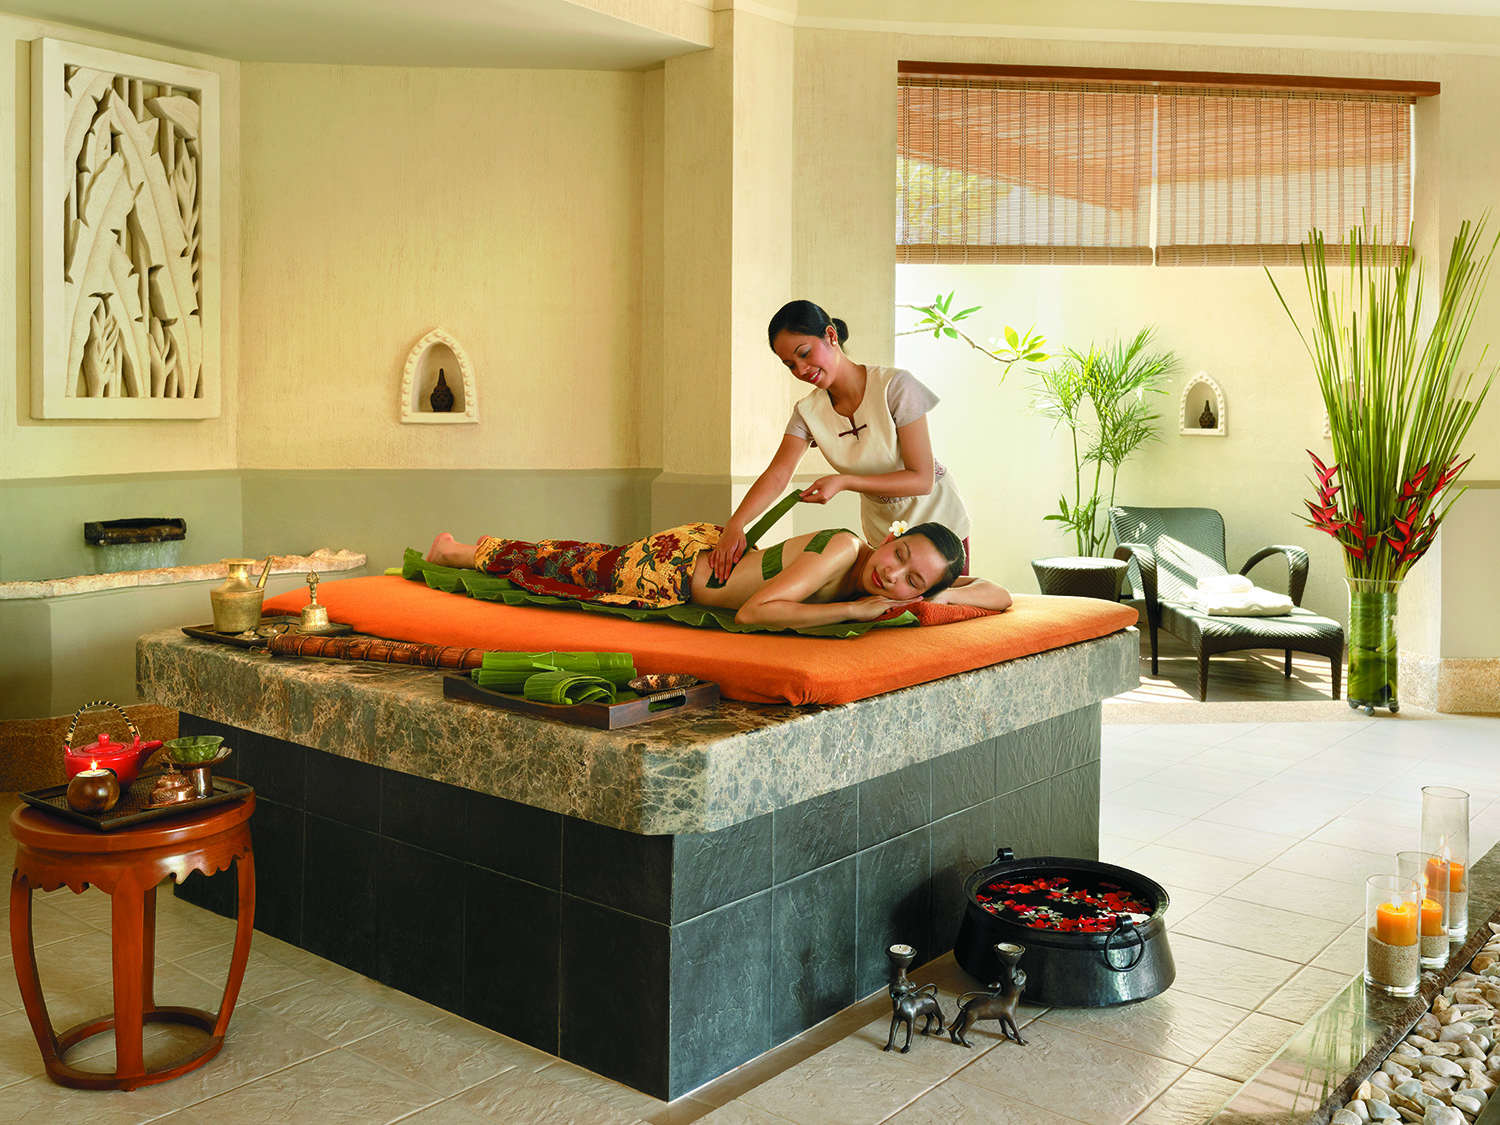 Banana leaf treatment at CHI, The Spa.